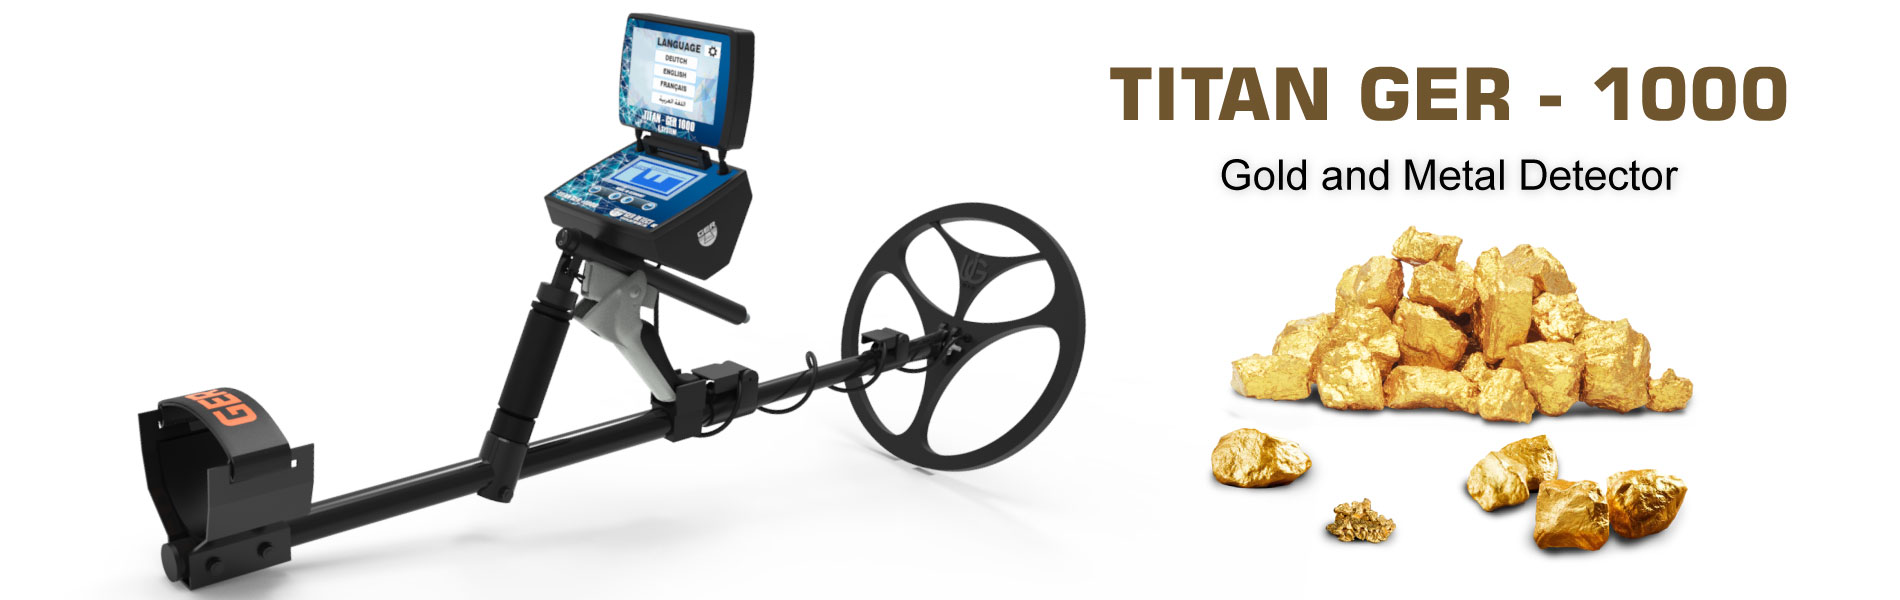 titan-ger-1000-best-detector-for-metal-and-gold